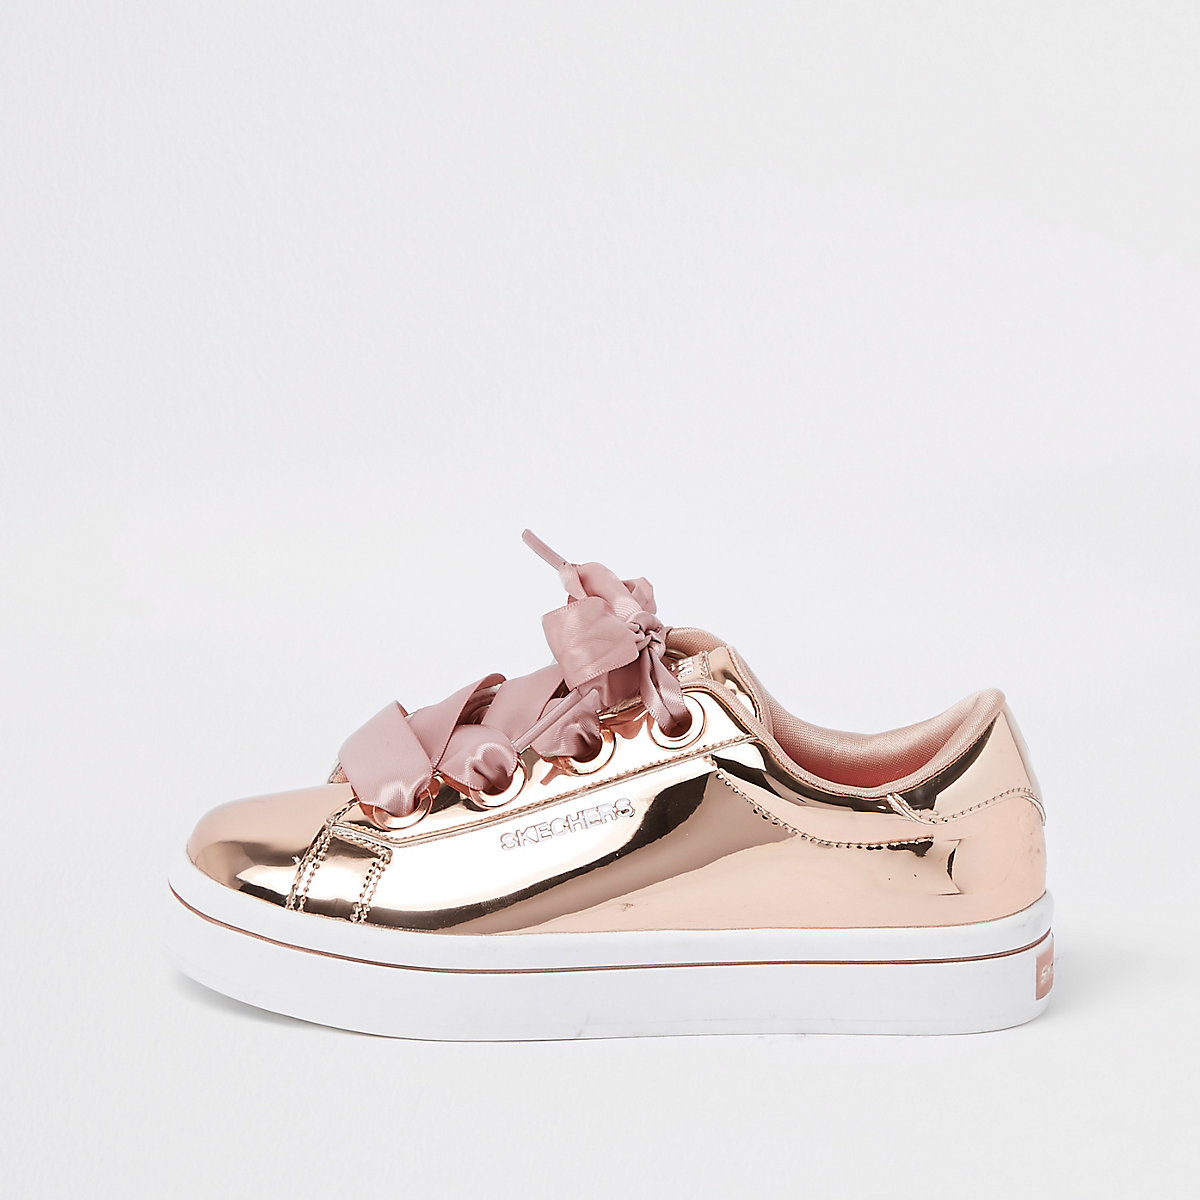 Girls Skechers rose gold low top trainers